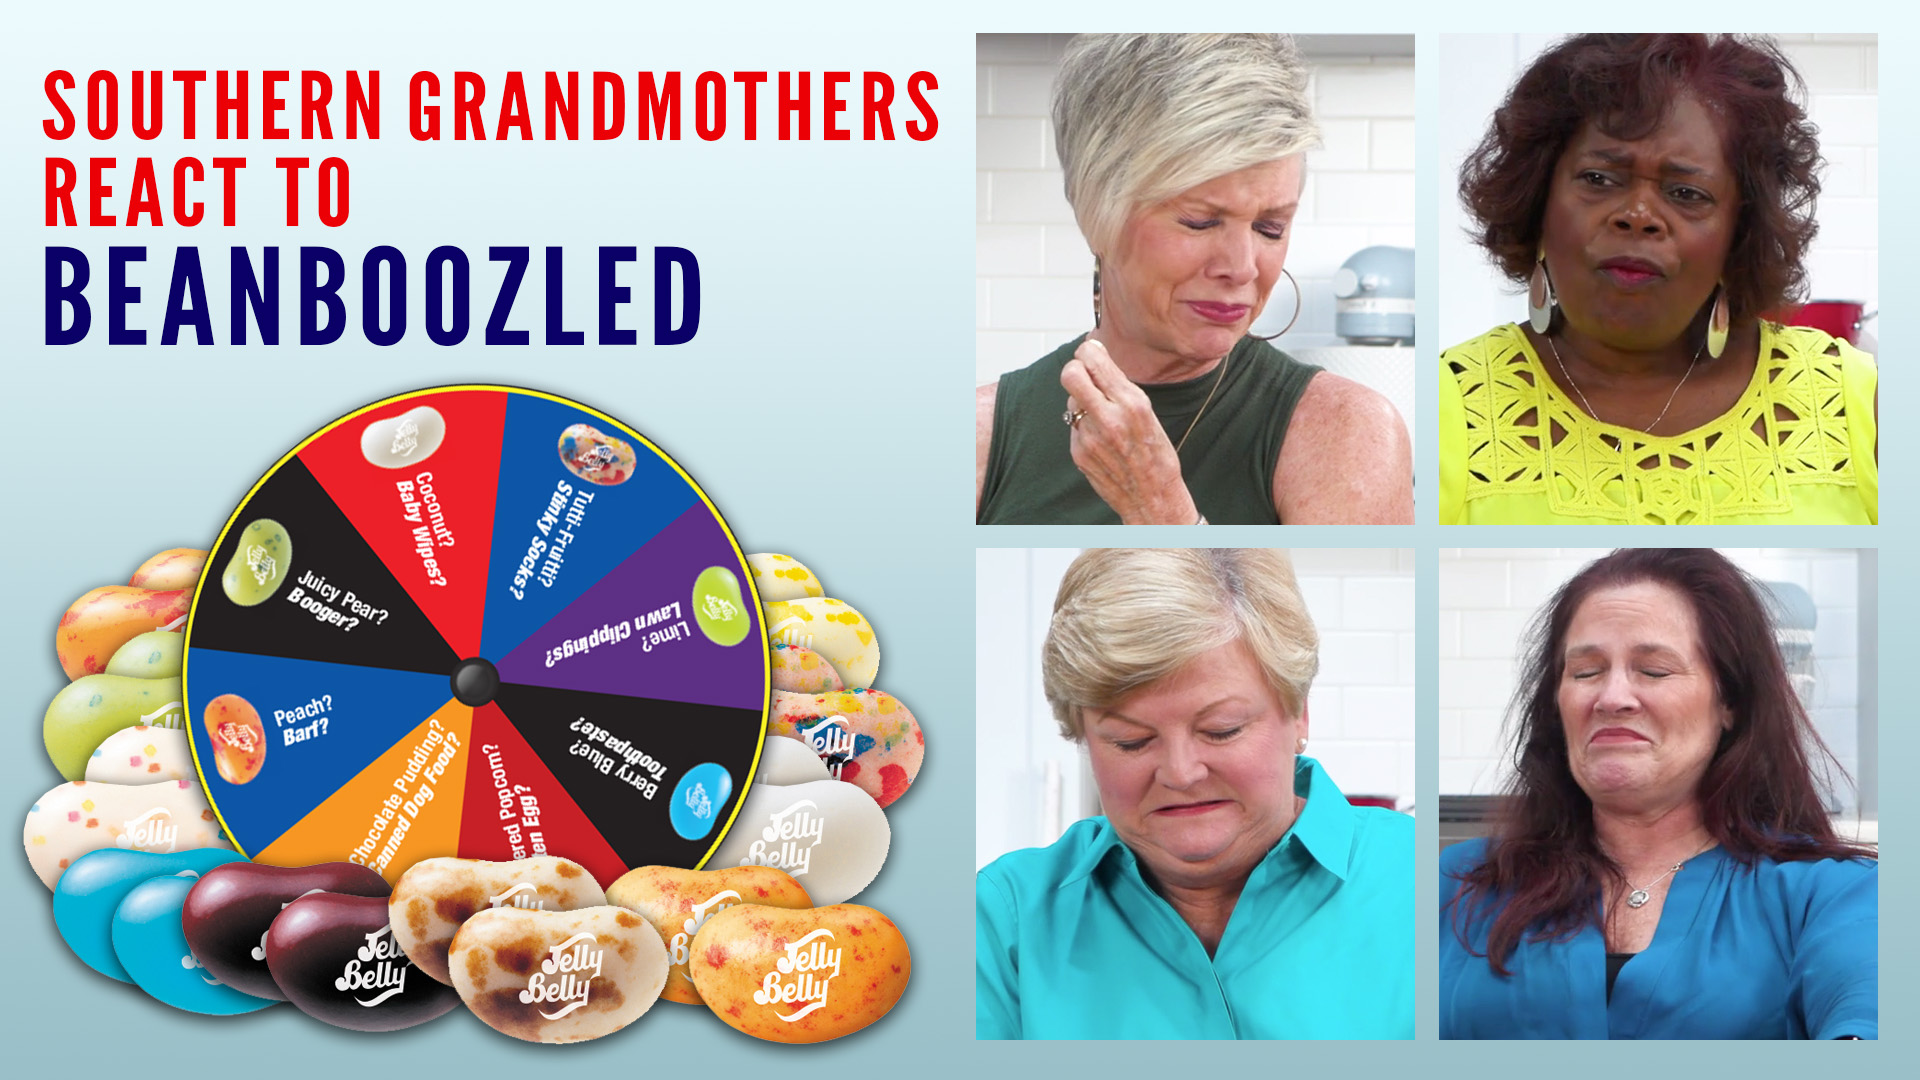 Southern Grandmothers React To Beanboozled